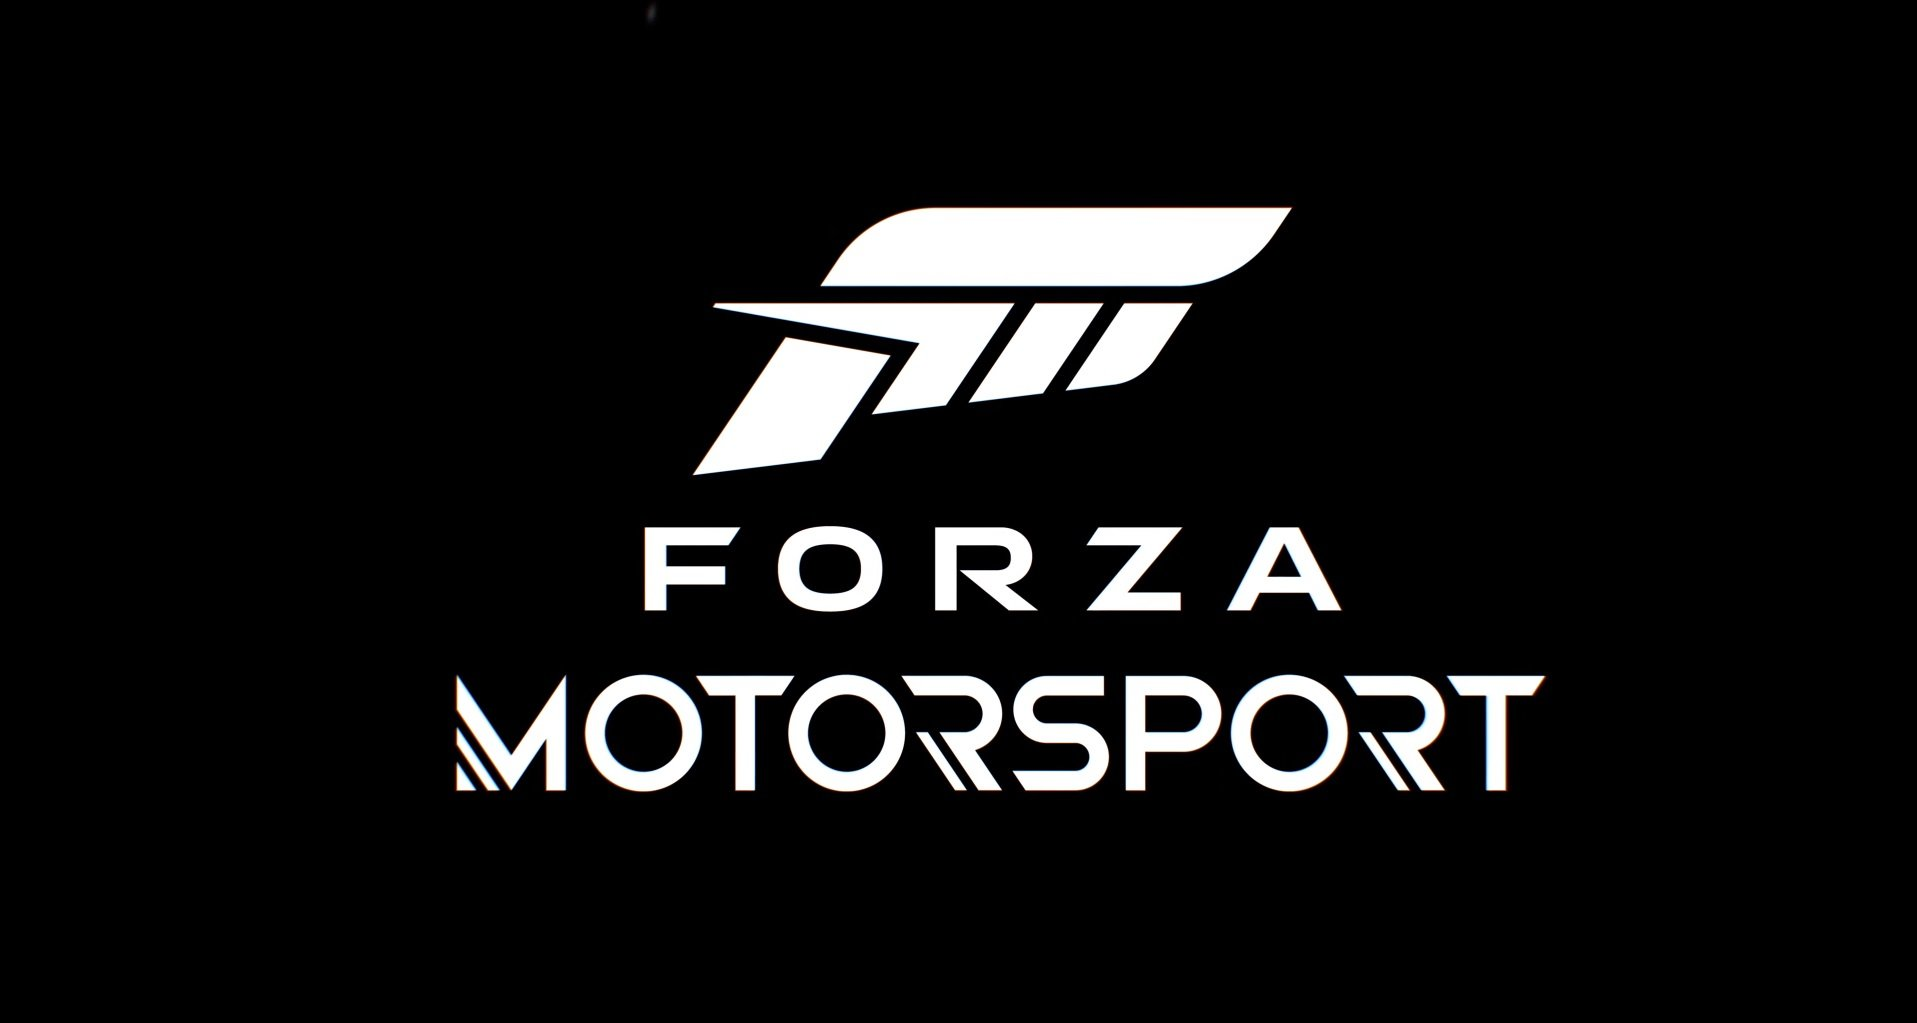 New Forza Motorsport revealed for Xbox Series X